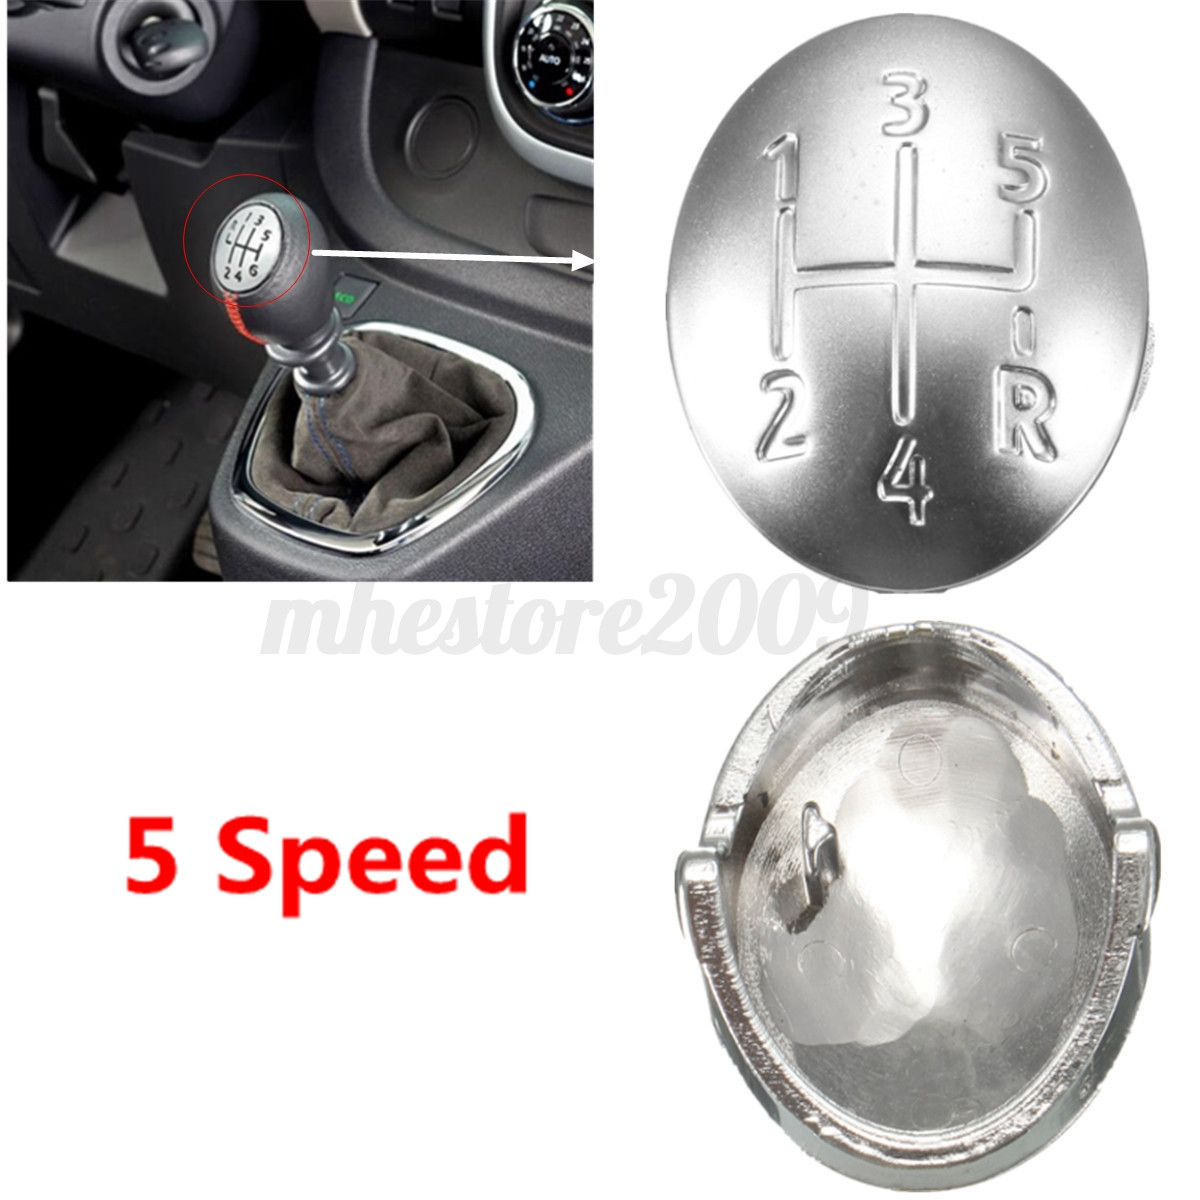 5 Speed Gear Shift Knob Cap Cover Insert For Renault Clio